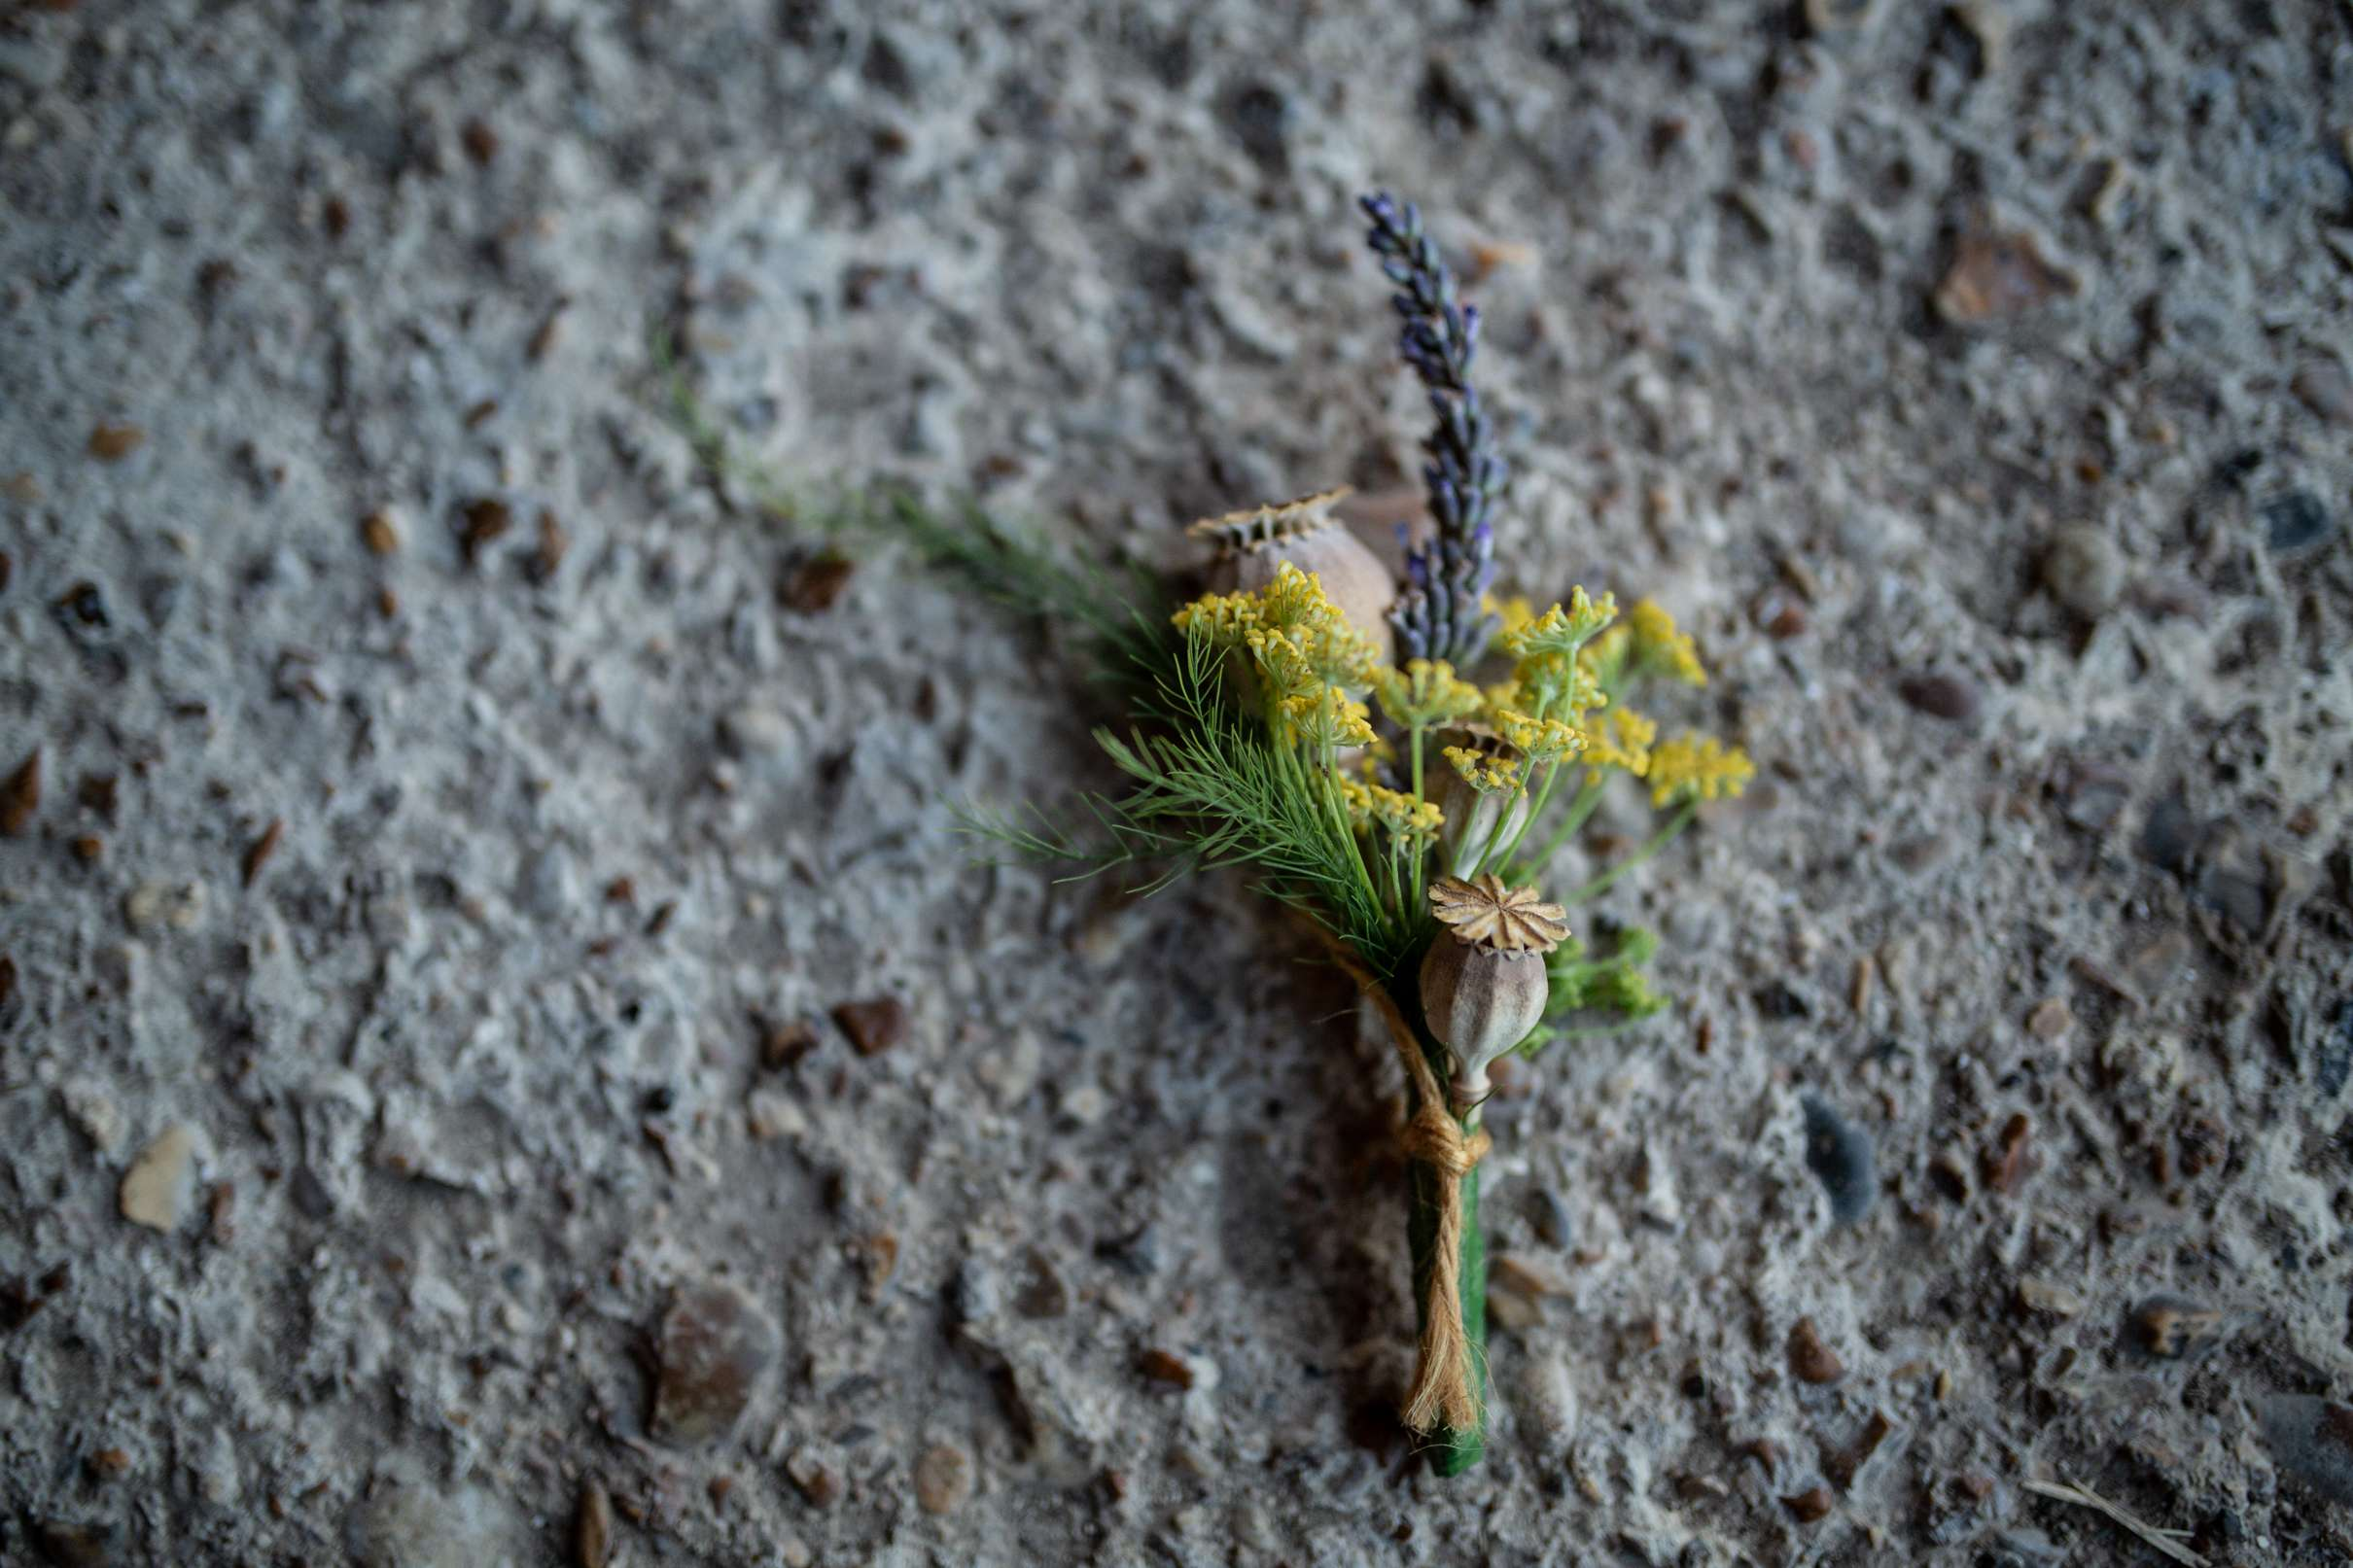 A wedding photo in Chichester of a buttonhole against a concrete backdrop, taken at Chidham barn, Chichester